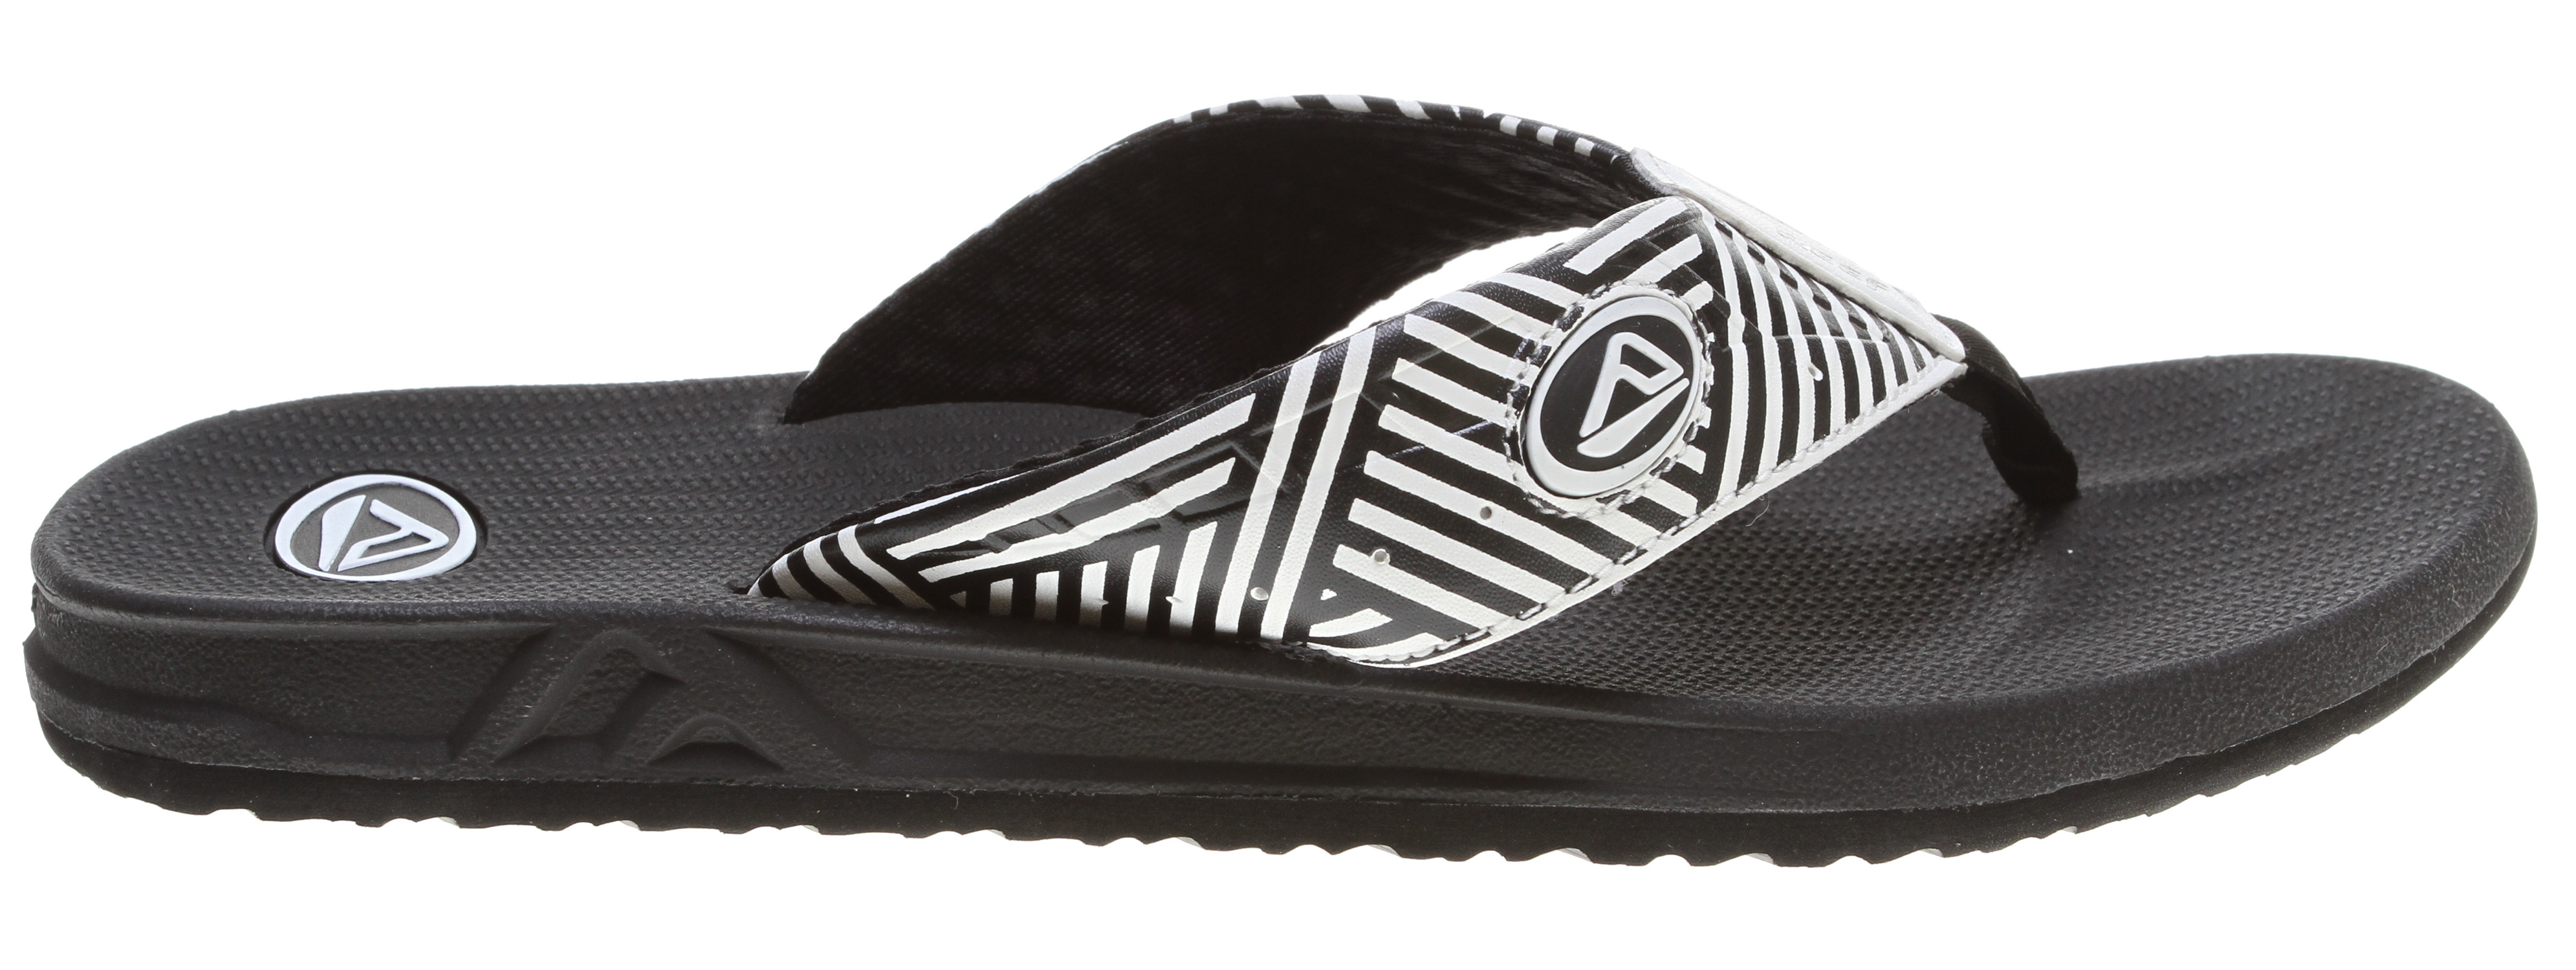 Surf Reef Phantoms Prints Sandals - $18.95